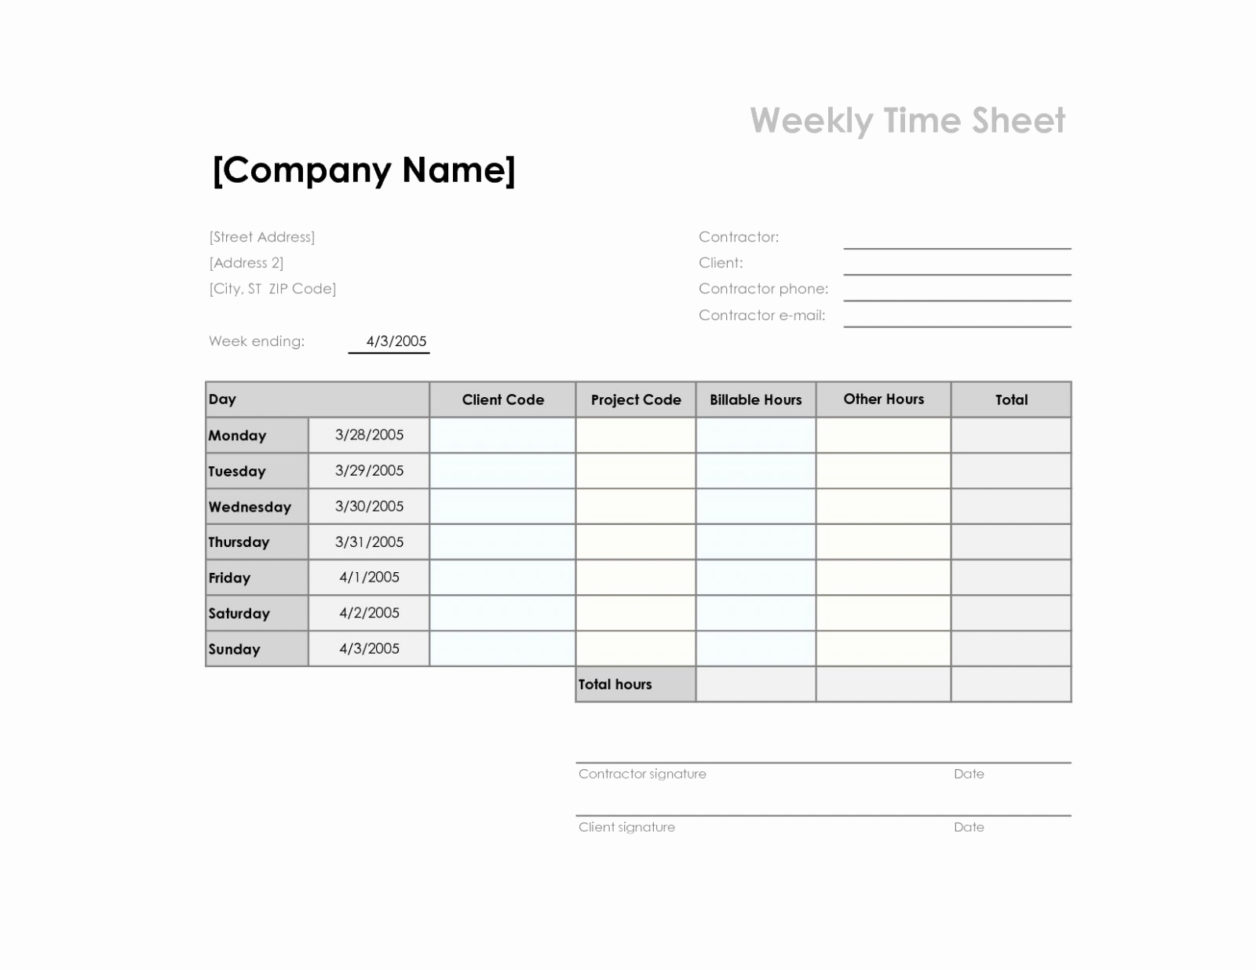 Vacation Tracking Spreadsheet Spreadsheet Softwar Vacation Tracking Spreadsheet Excel Vacation